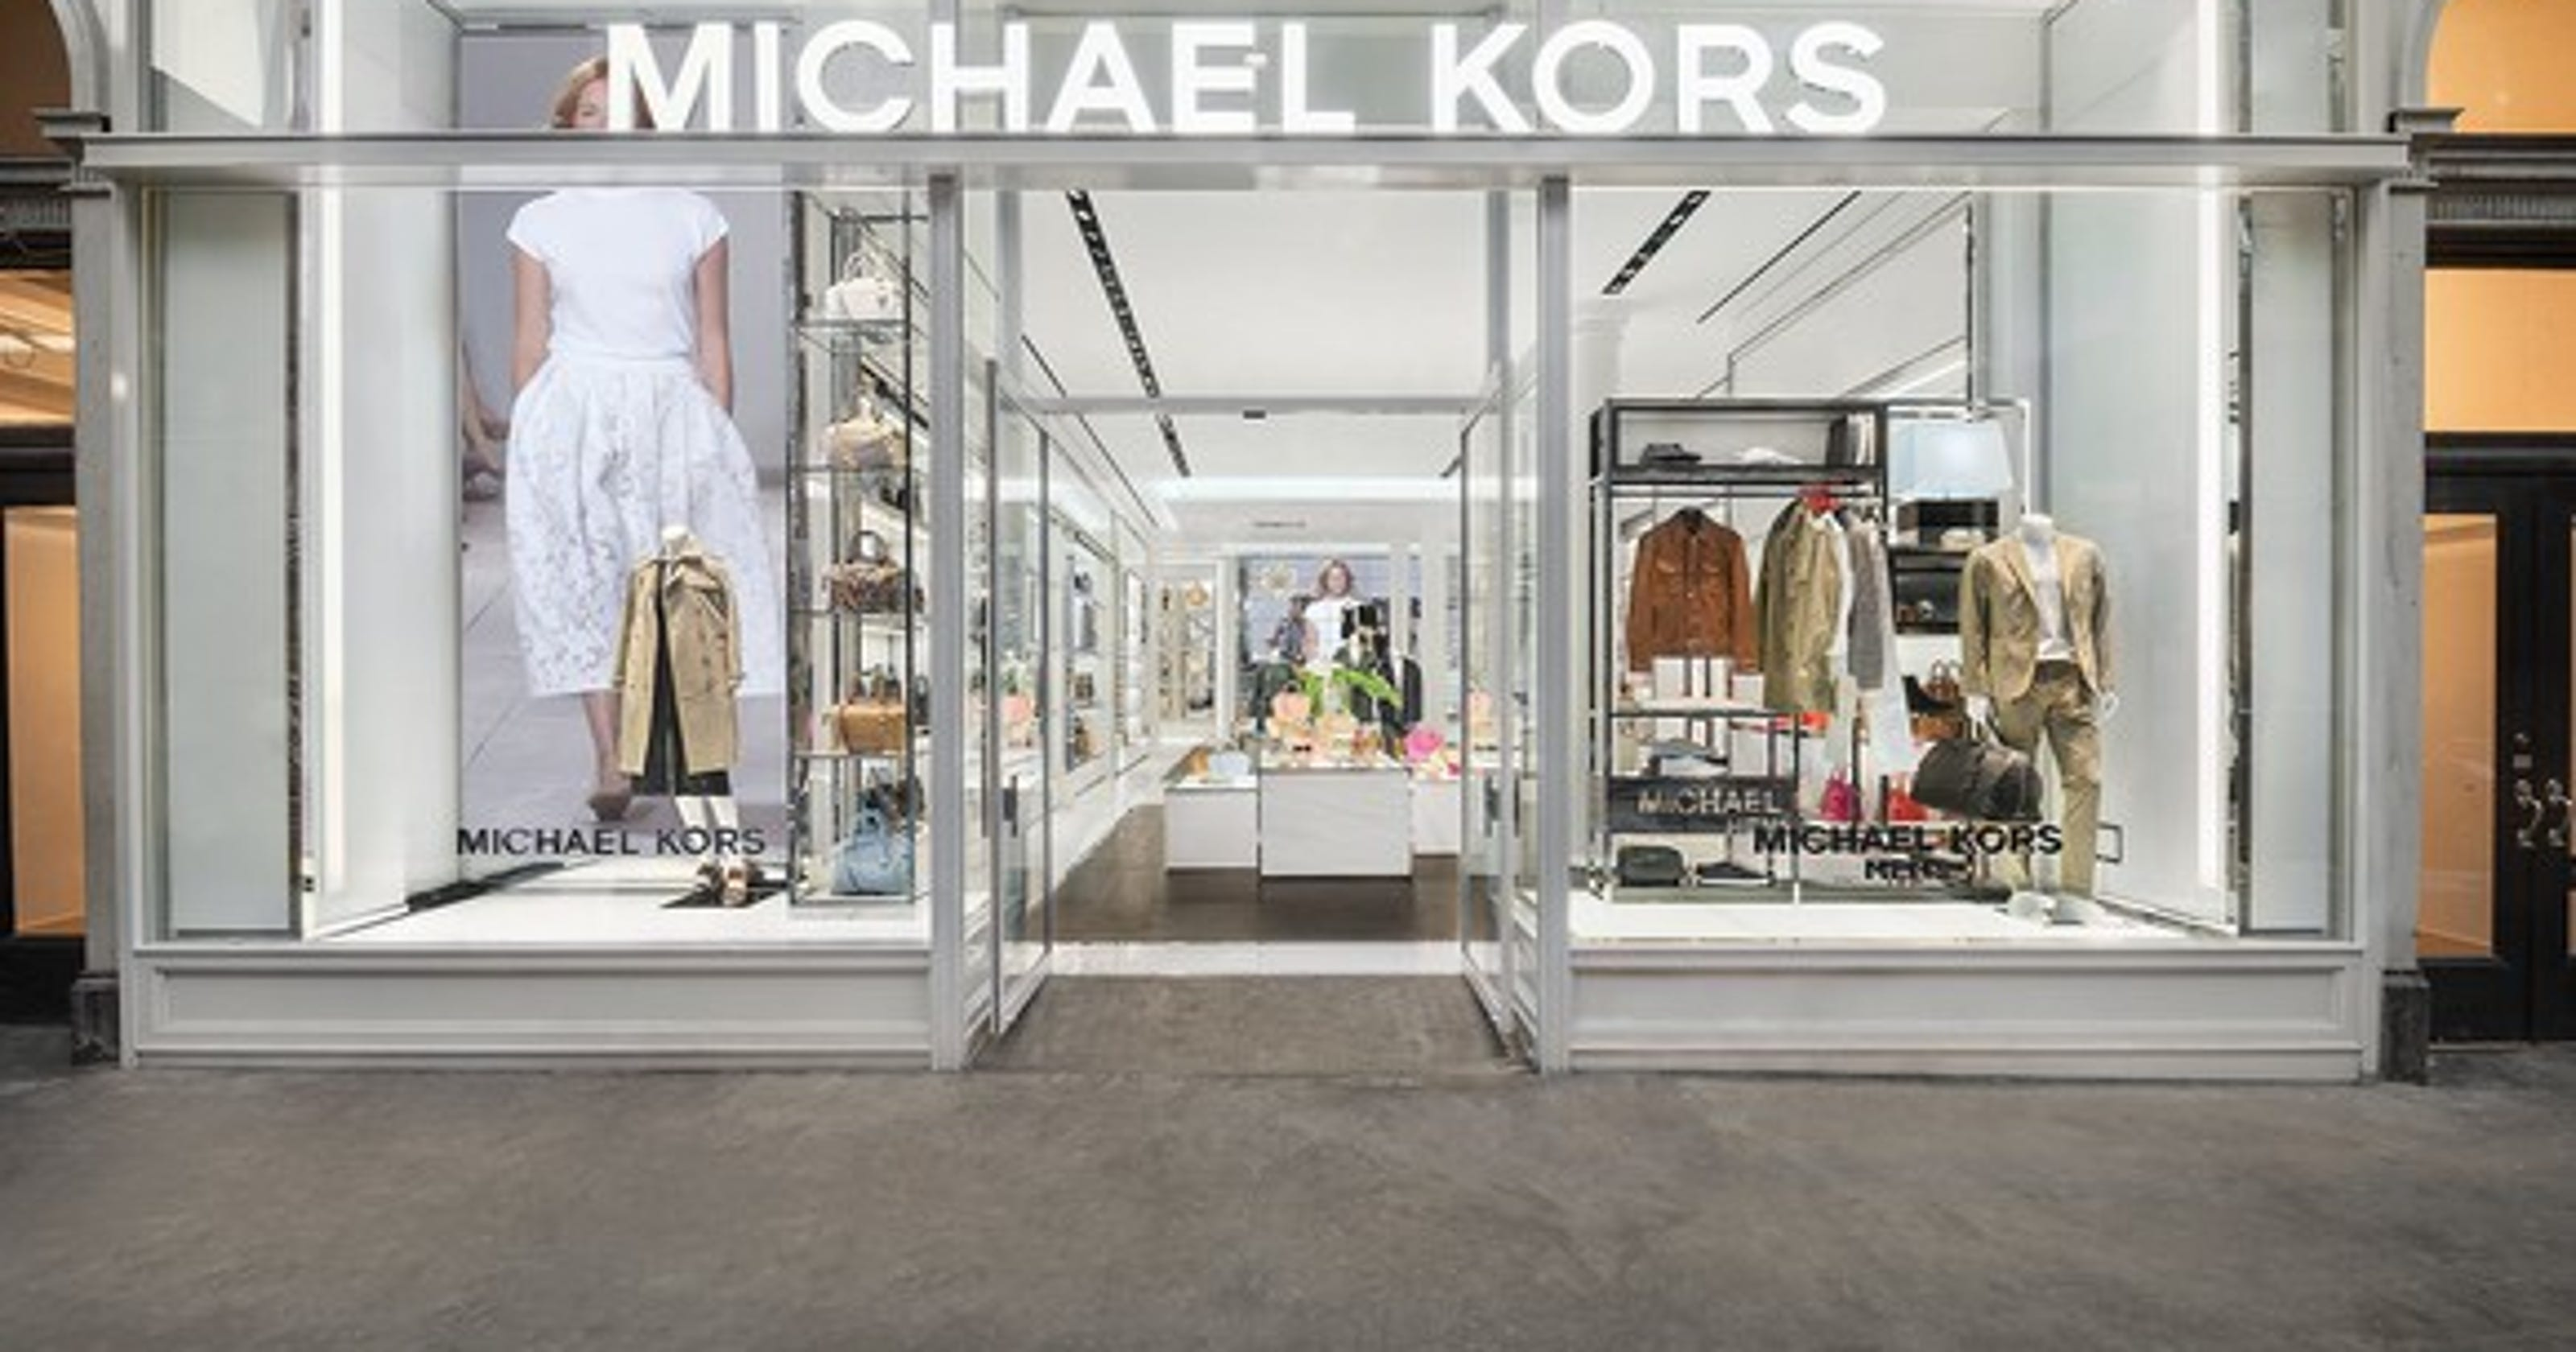 12d16fc40617 Luxury handbag brands Michael Kors, Kate Spade, Coach resonate with teens  most: A Foolish Take